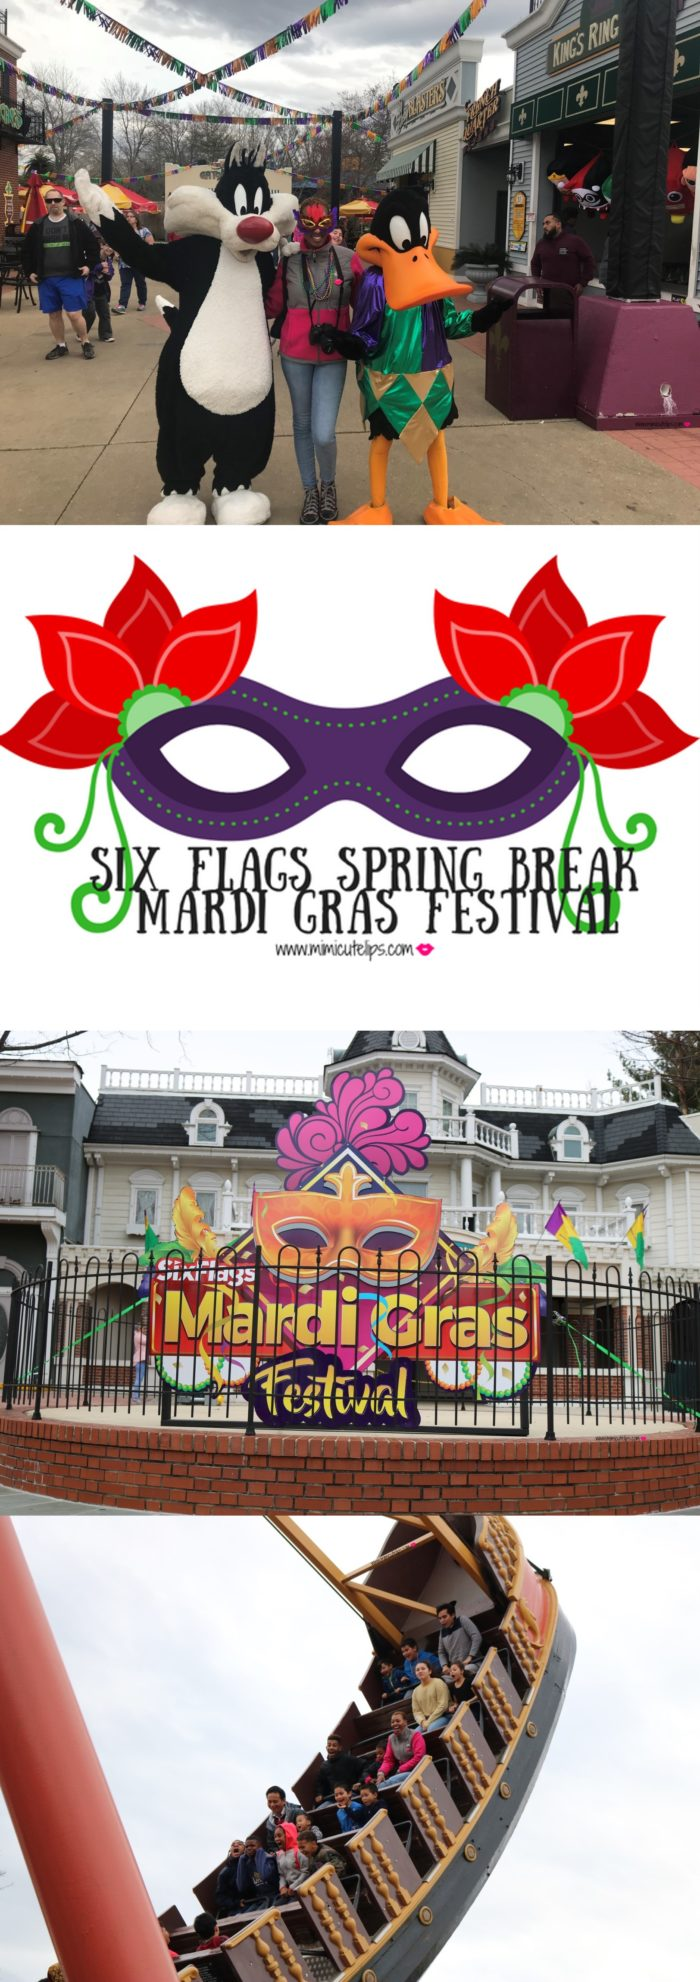 Six Flags Mardi Gras Festival is in full spring March 30 - April 8th. Lifestyle Media Correspondent MimiCuteLips and her family went out for a day of fun. Six Flags is celebrating their 20 year anniversary. #SixFlags #SixFlagsAmerica #MardiGrasFestival #SixFlagsMardiGras